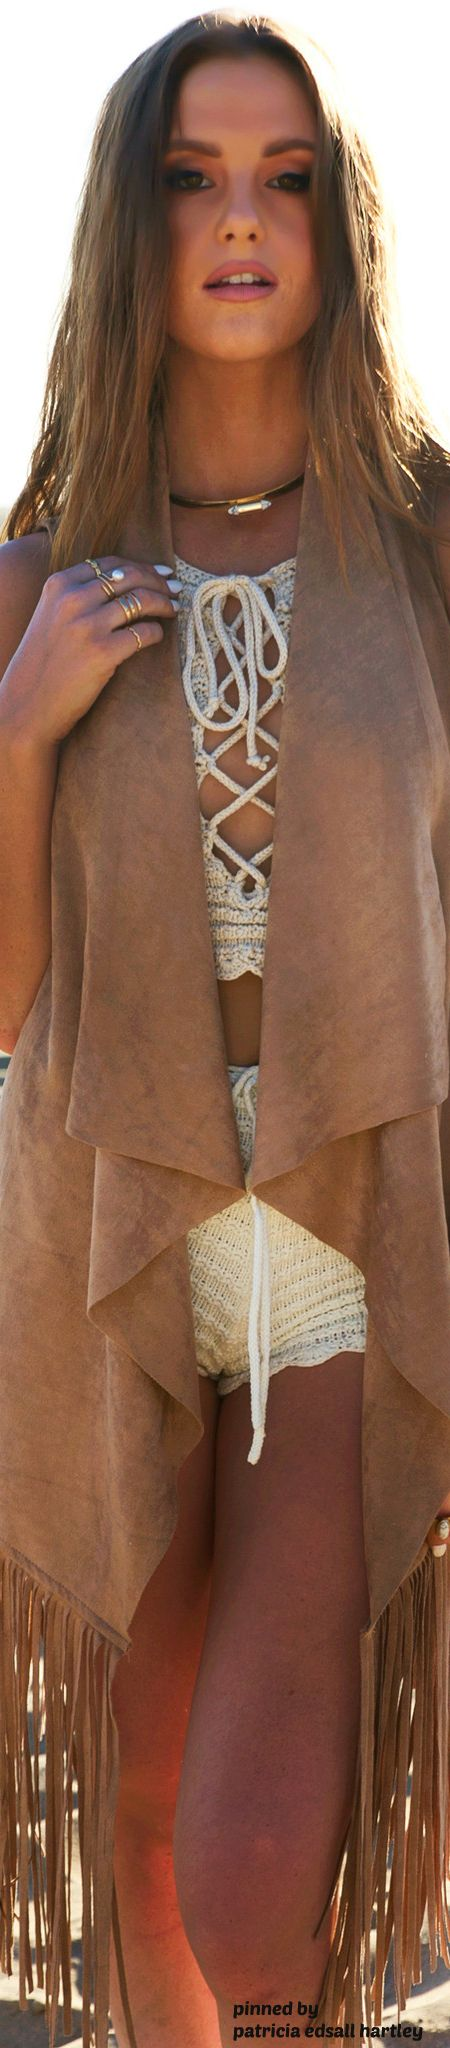 Boho Style women fashion outfit clothing style apparel @roressclothes closet ideas